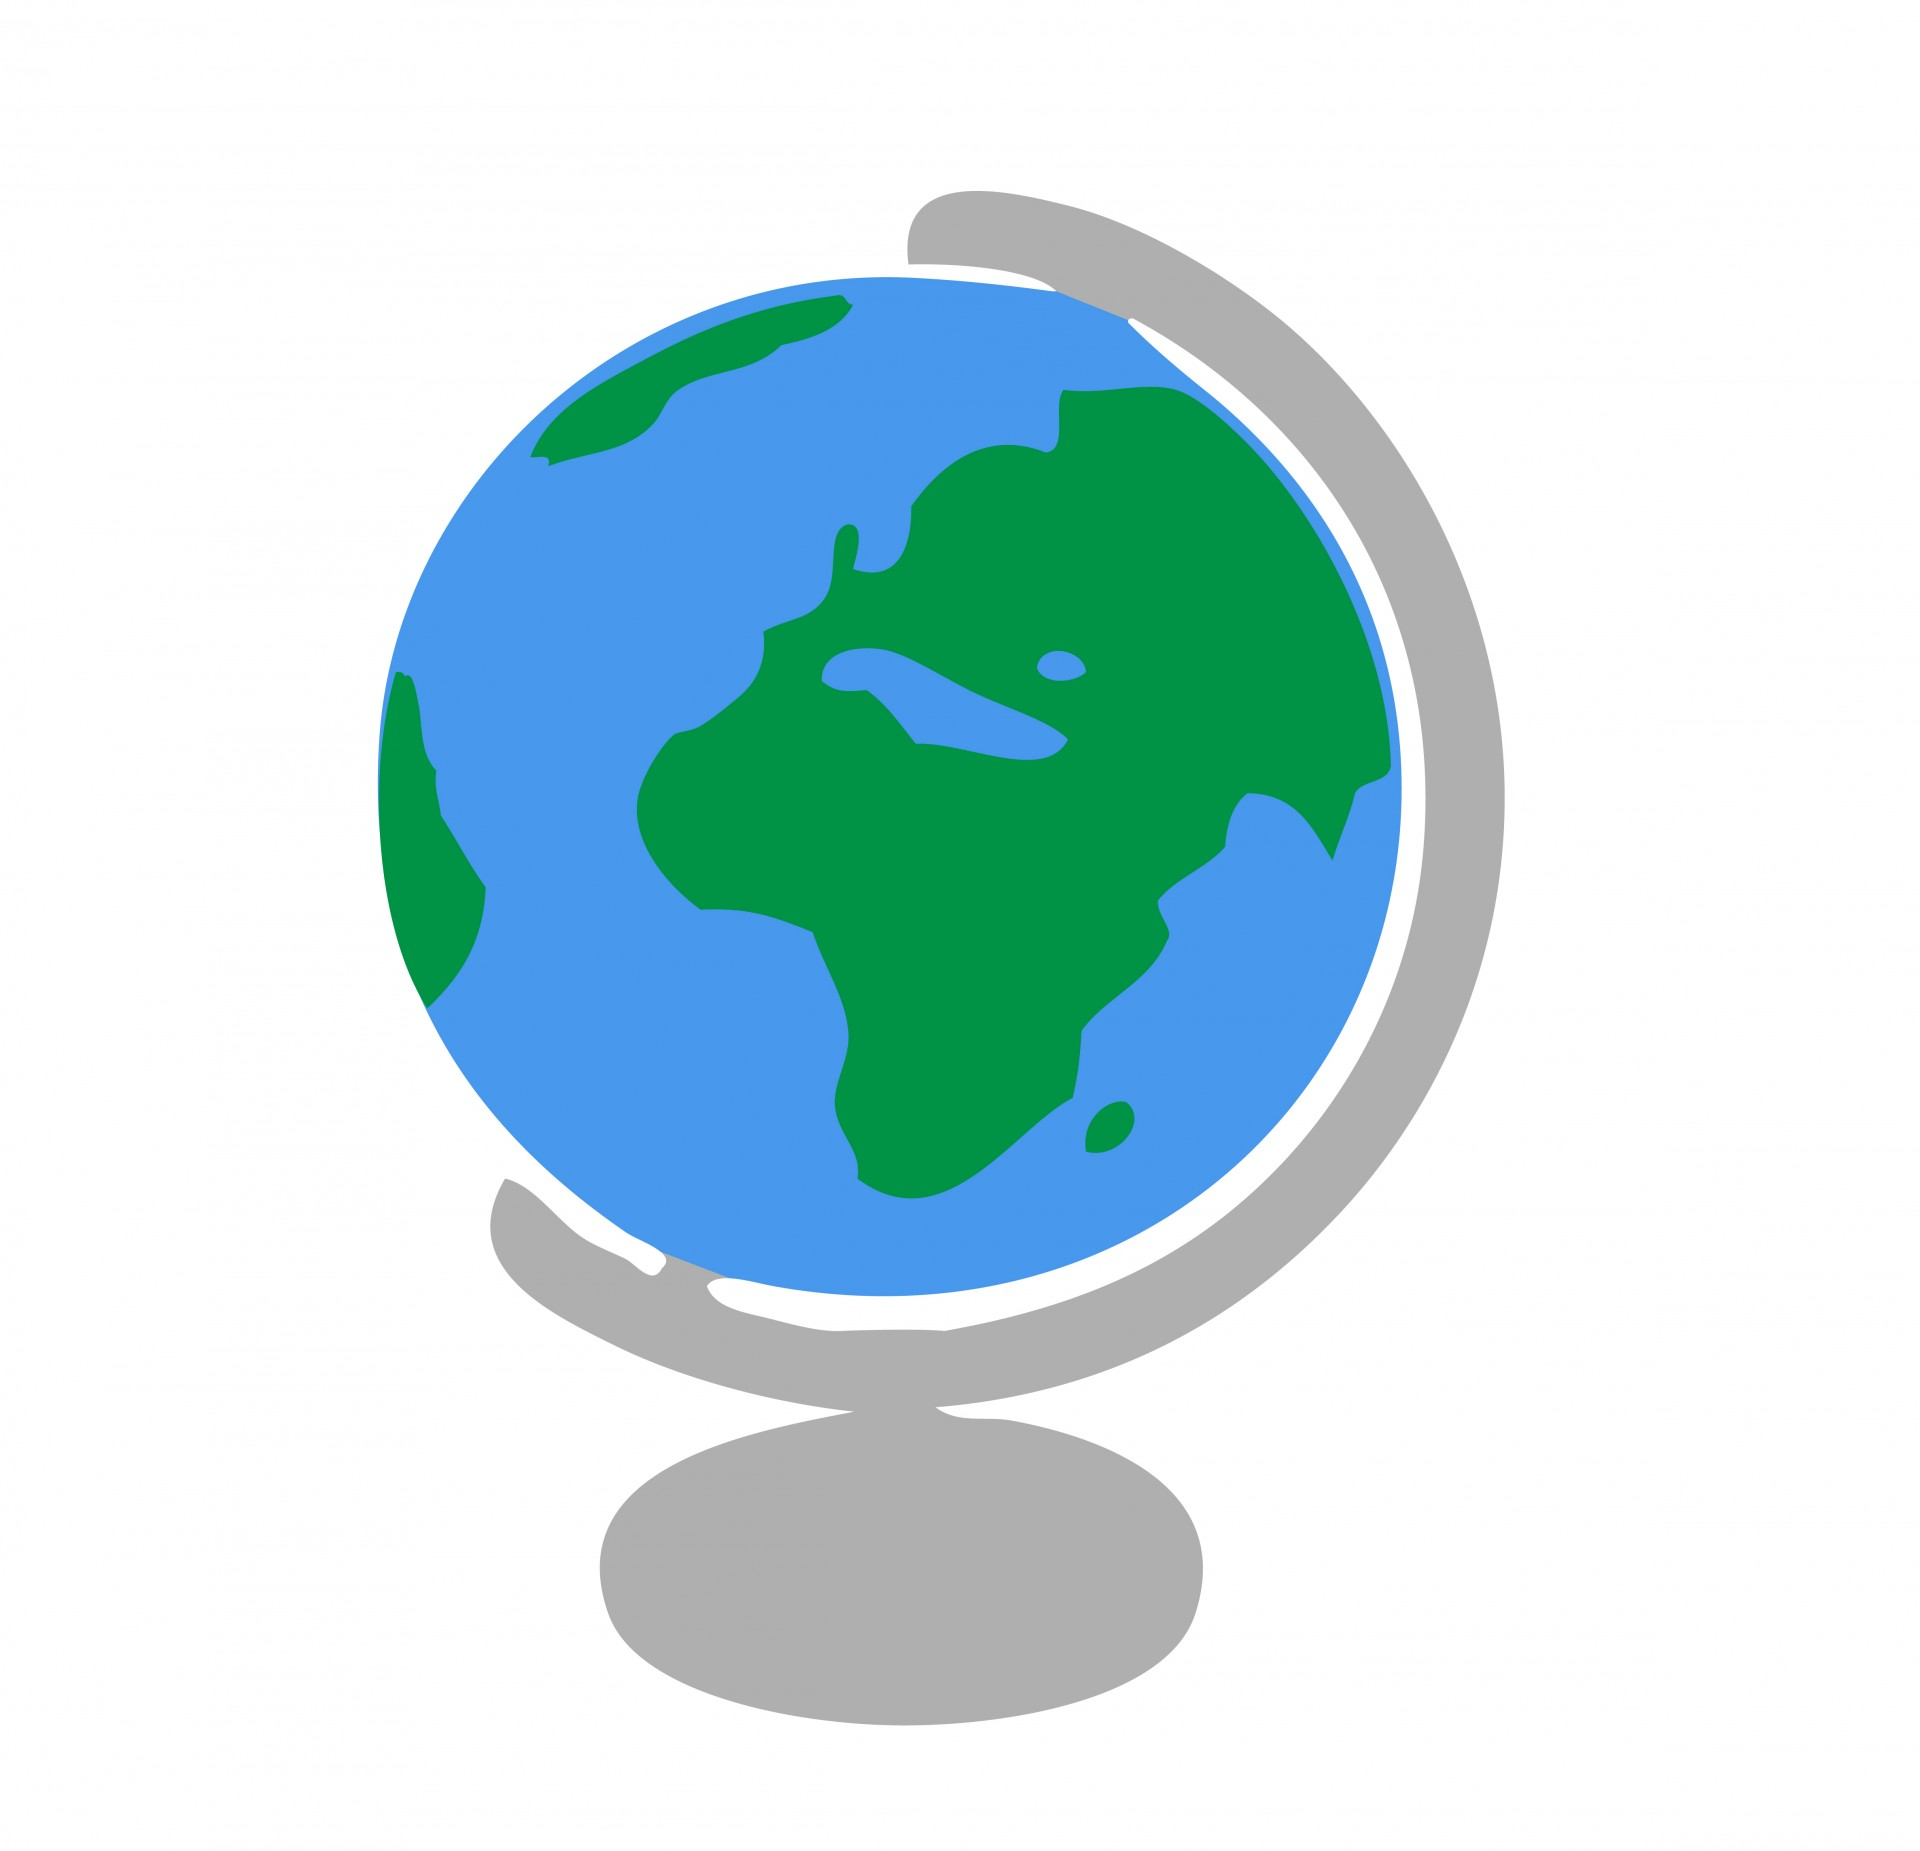 Globe clipart #3, Download drawings